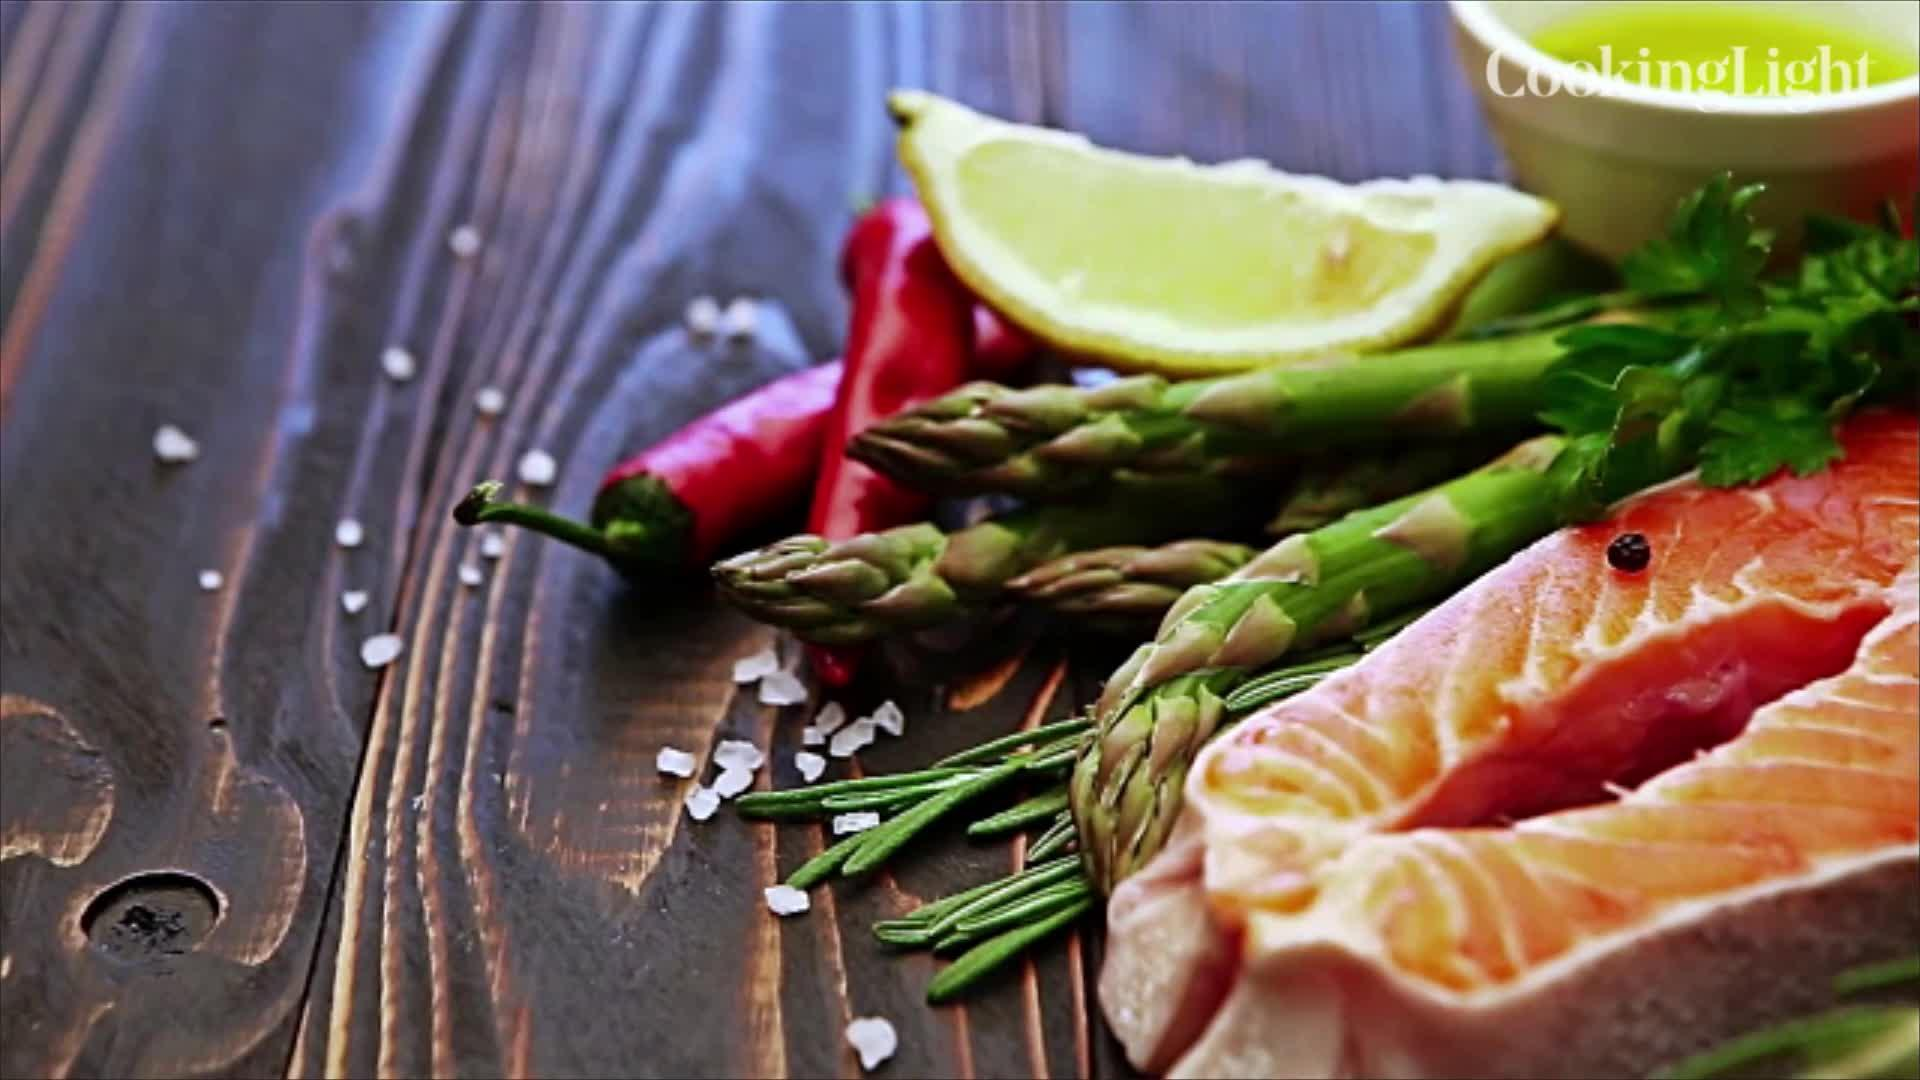 A Nutritionist Weighs in on 13 Trendy Superfoods: How Super Are They?